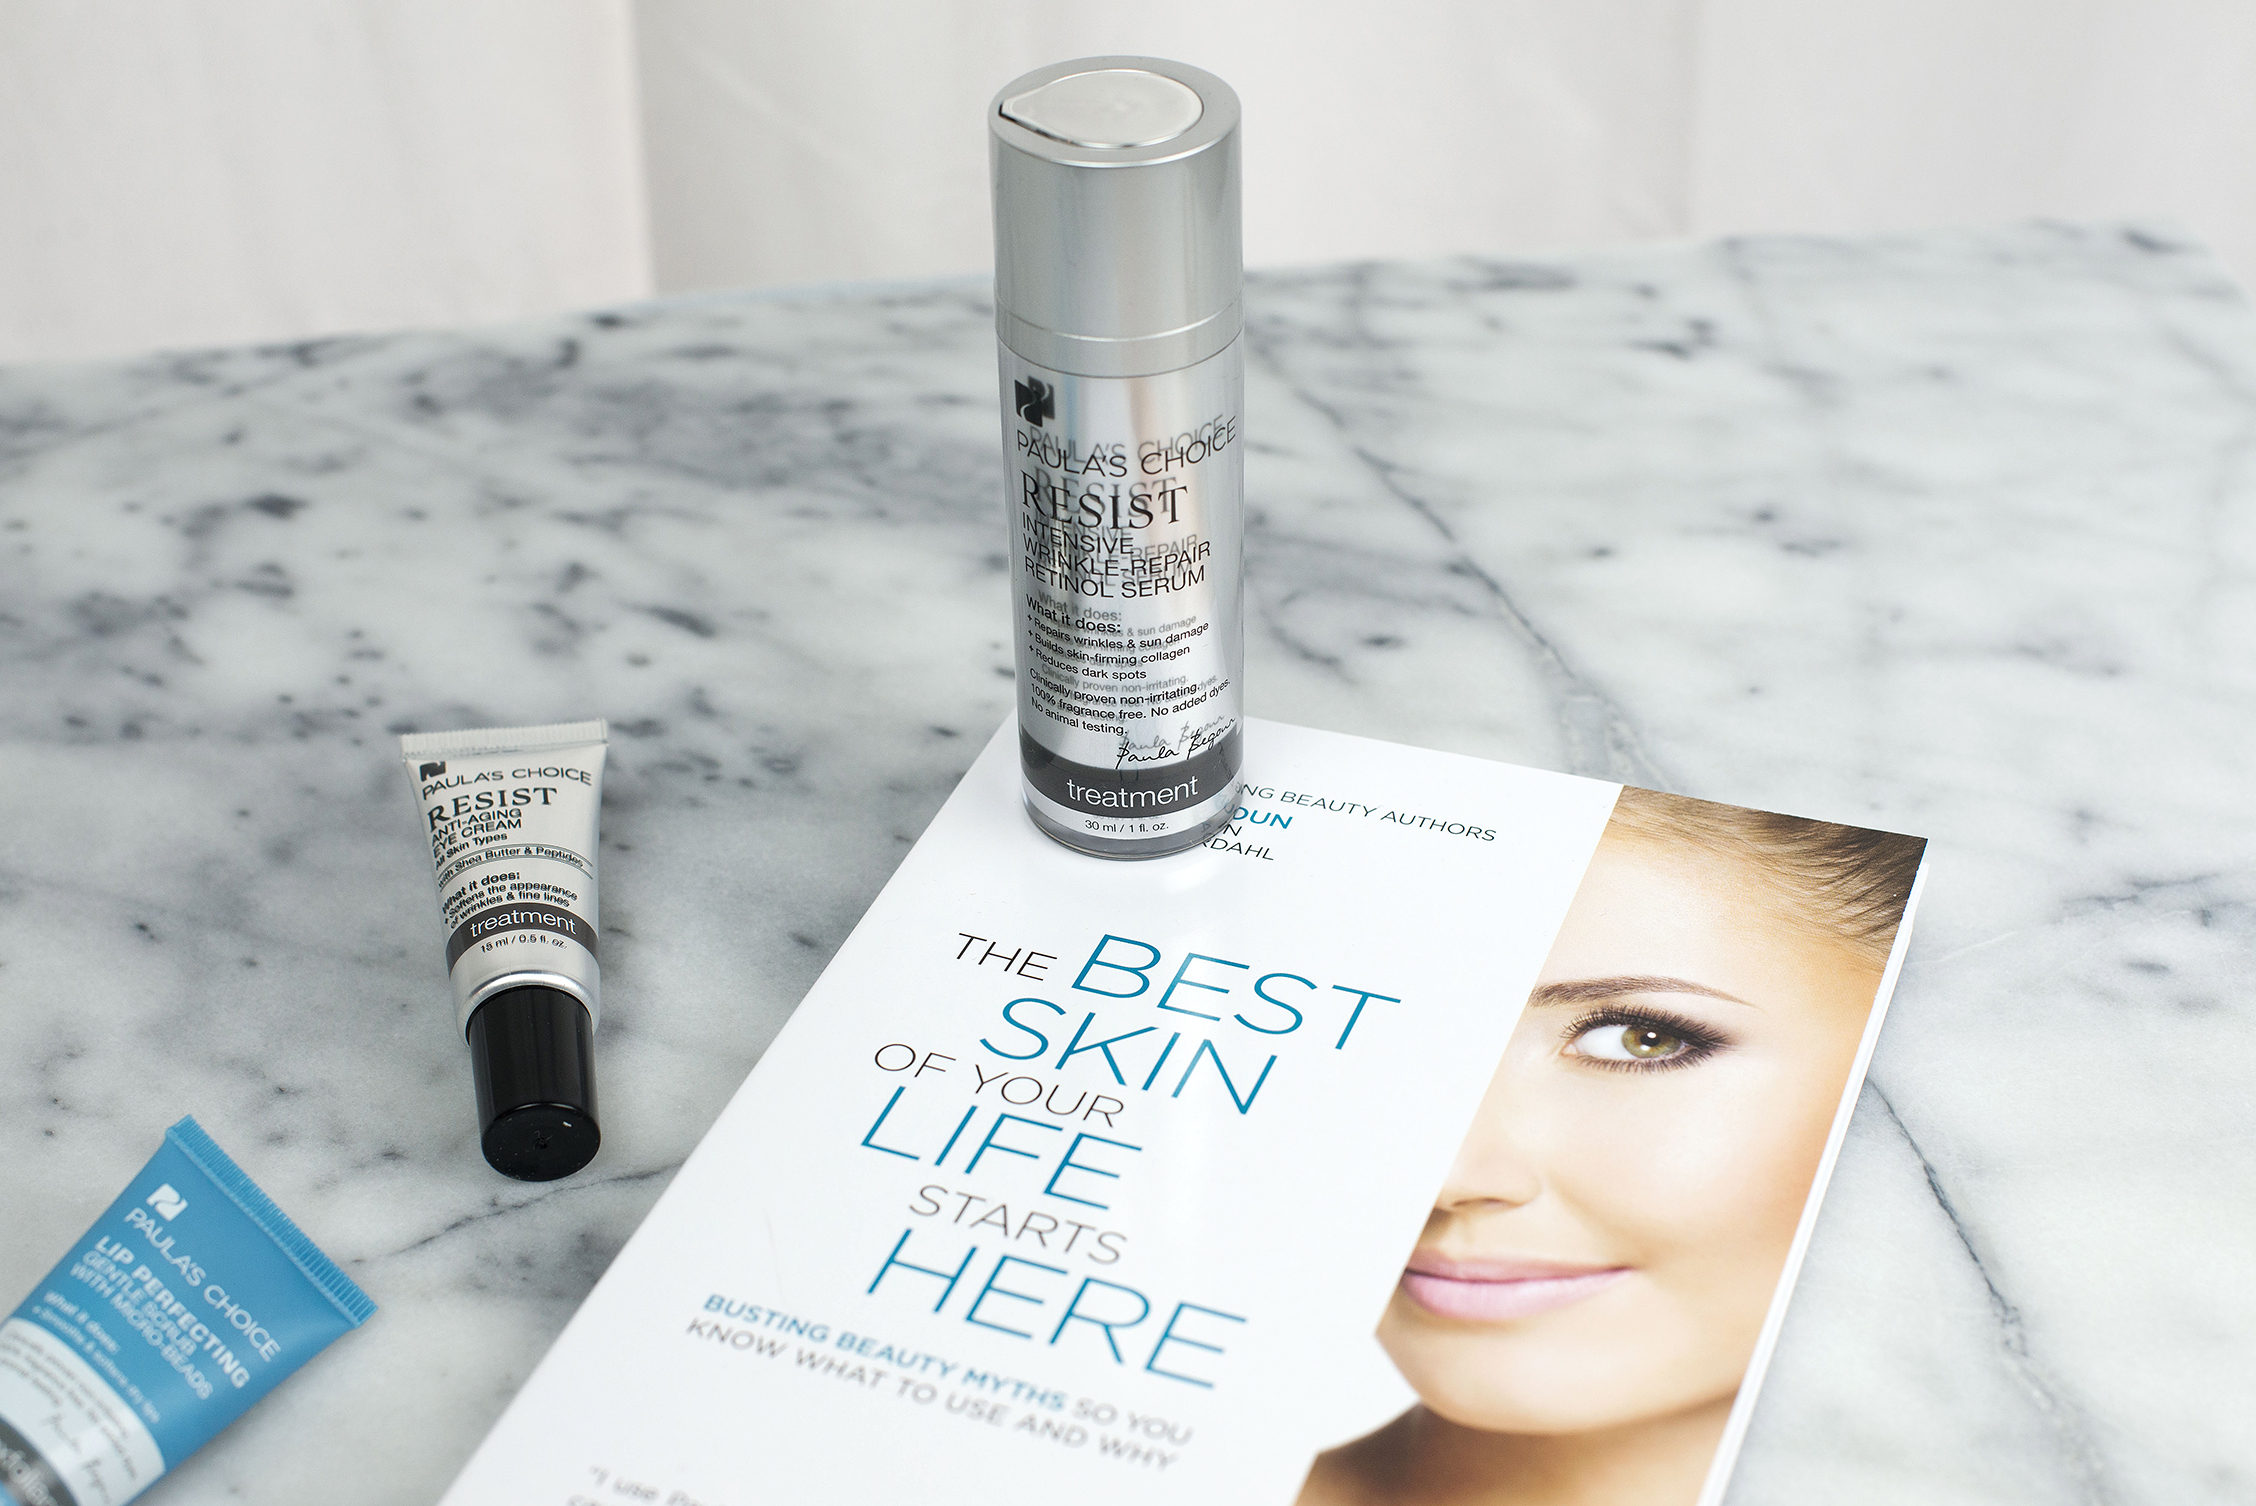 Resist Anti-Aging Eye Cream  ,   Resist Intensive Wrinkle-Repair Retinol Serum  ,   The Best Skin Of Your Life Starts Here Book  .